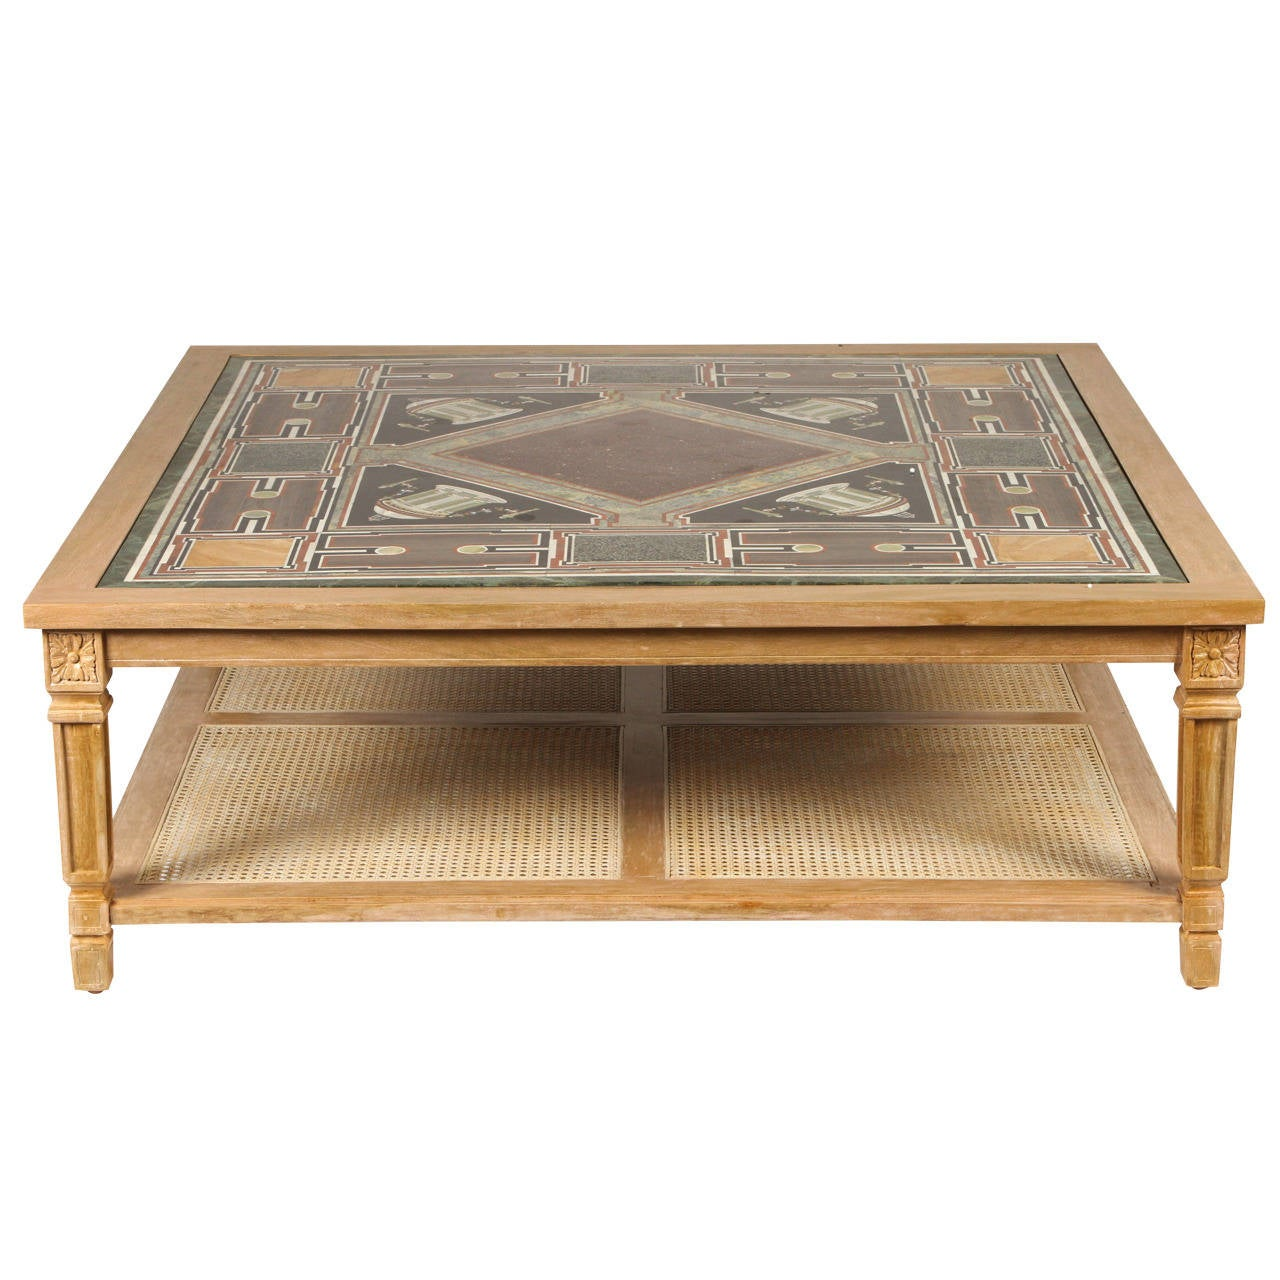 Cerused Mahogany Coffee Table With Inlaid Marble Top And Cane Shelf For Sale At 1stdibs